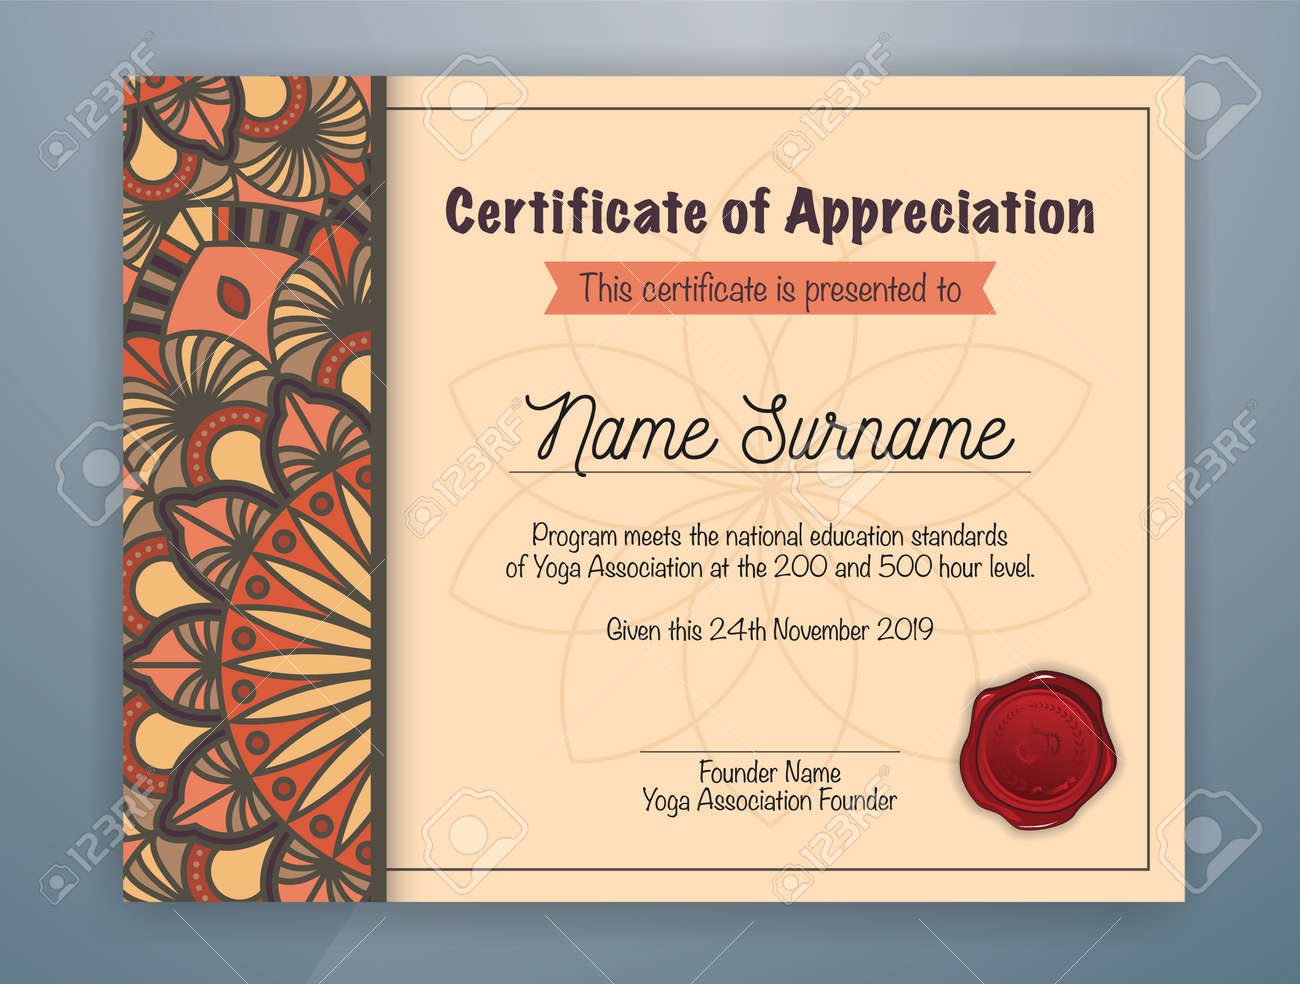 Brown mandala bordered certificate of appreciation template design brown mandala bordered certificate of appreciation template design for yoga class vector illustration stock vector yadclub Gallery